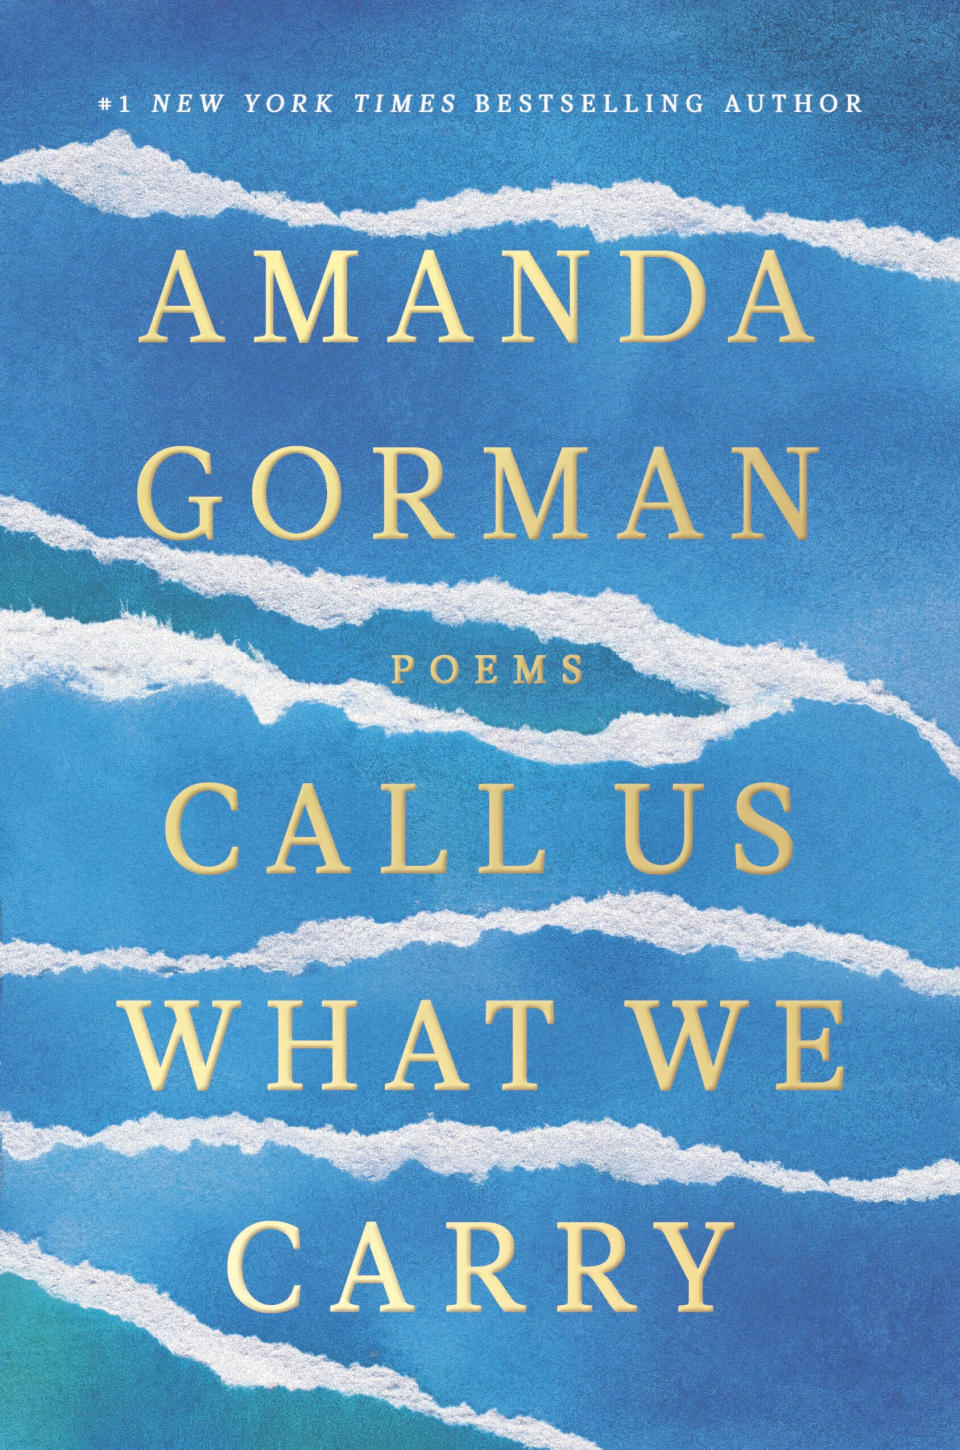 """This cover image released by Viking Books shows """"Call Us What We Carry,"""" poems by Amanda Gorman, releasing Dec. 7. (Viking Books via AP)"""